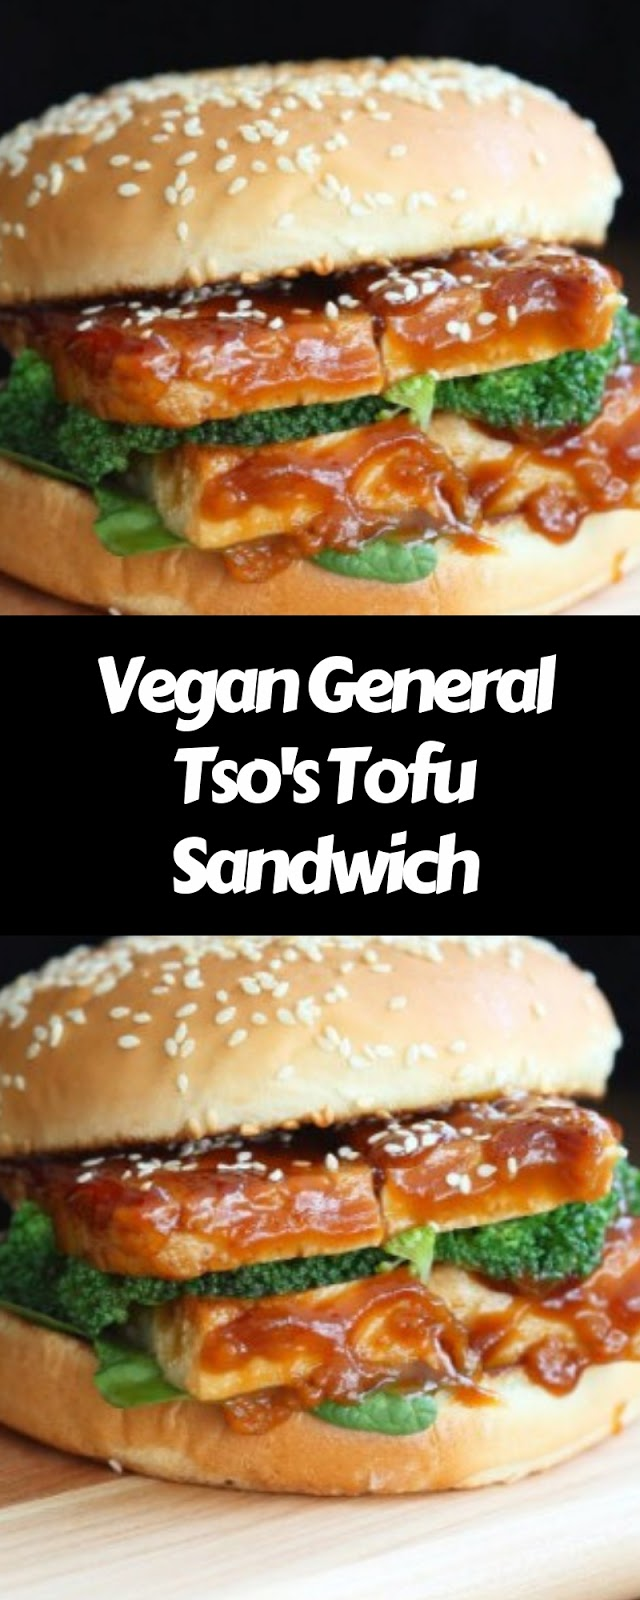 Vegan General Tso and Tofu Sandwich